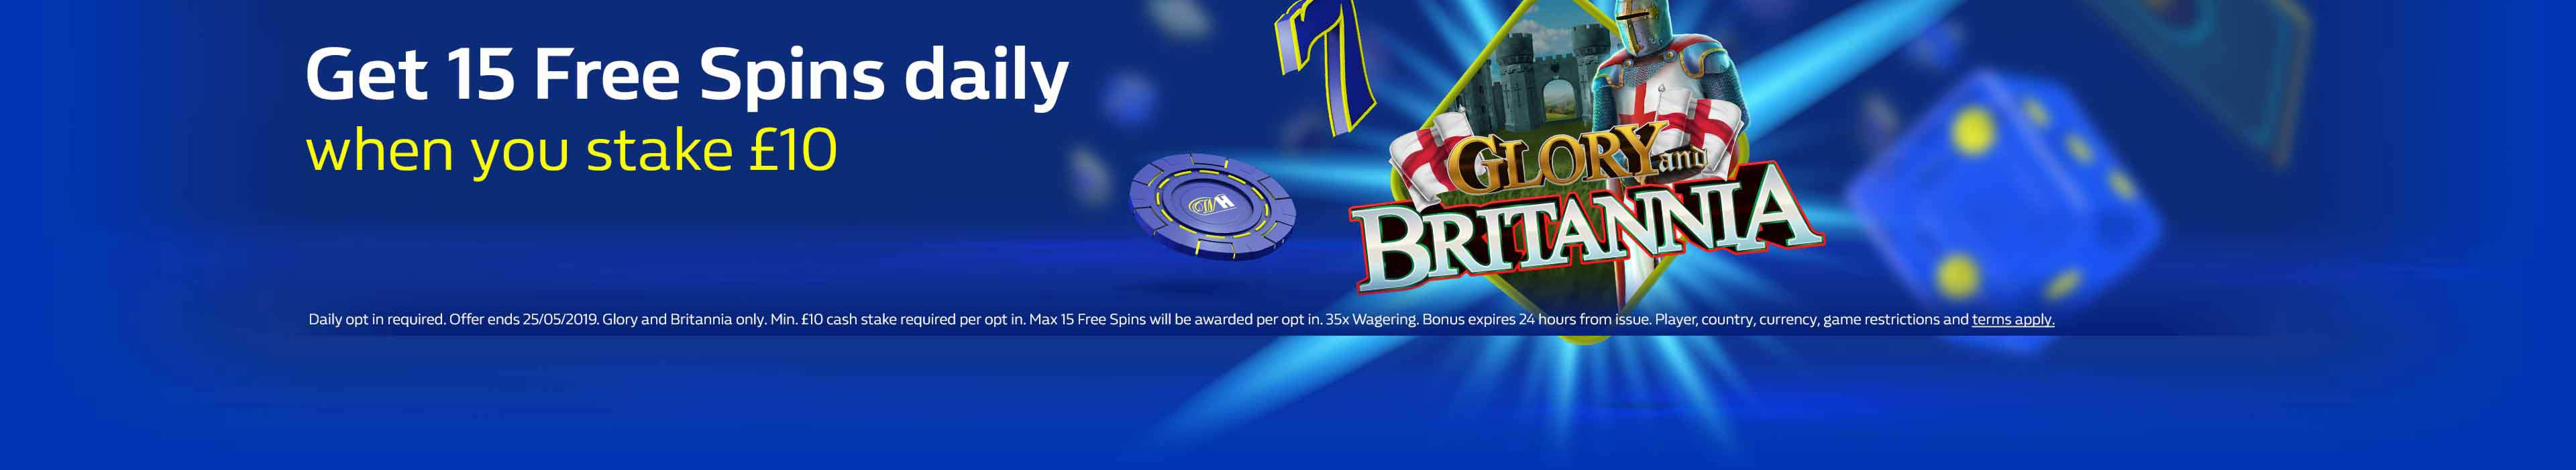 Stake £10 and get 15 Daily Free Spins on Glory and Britannia